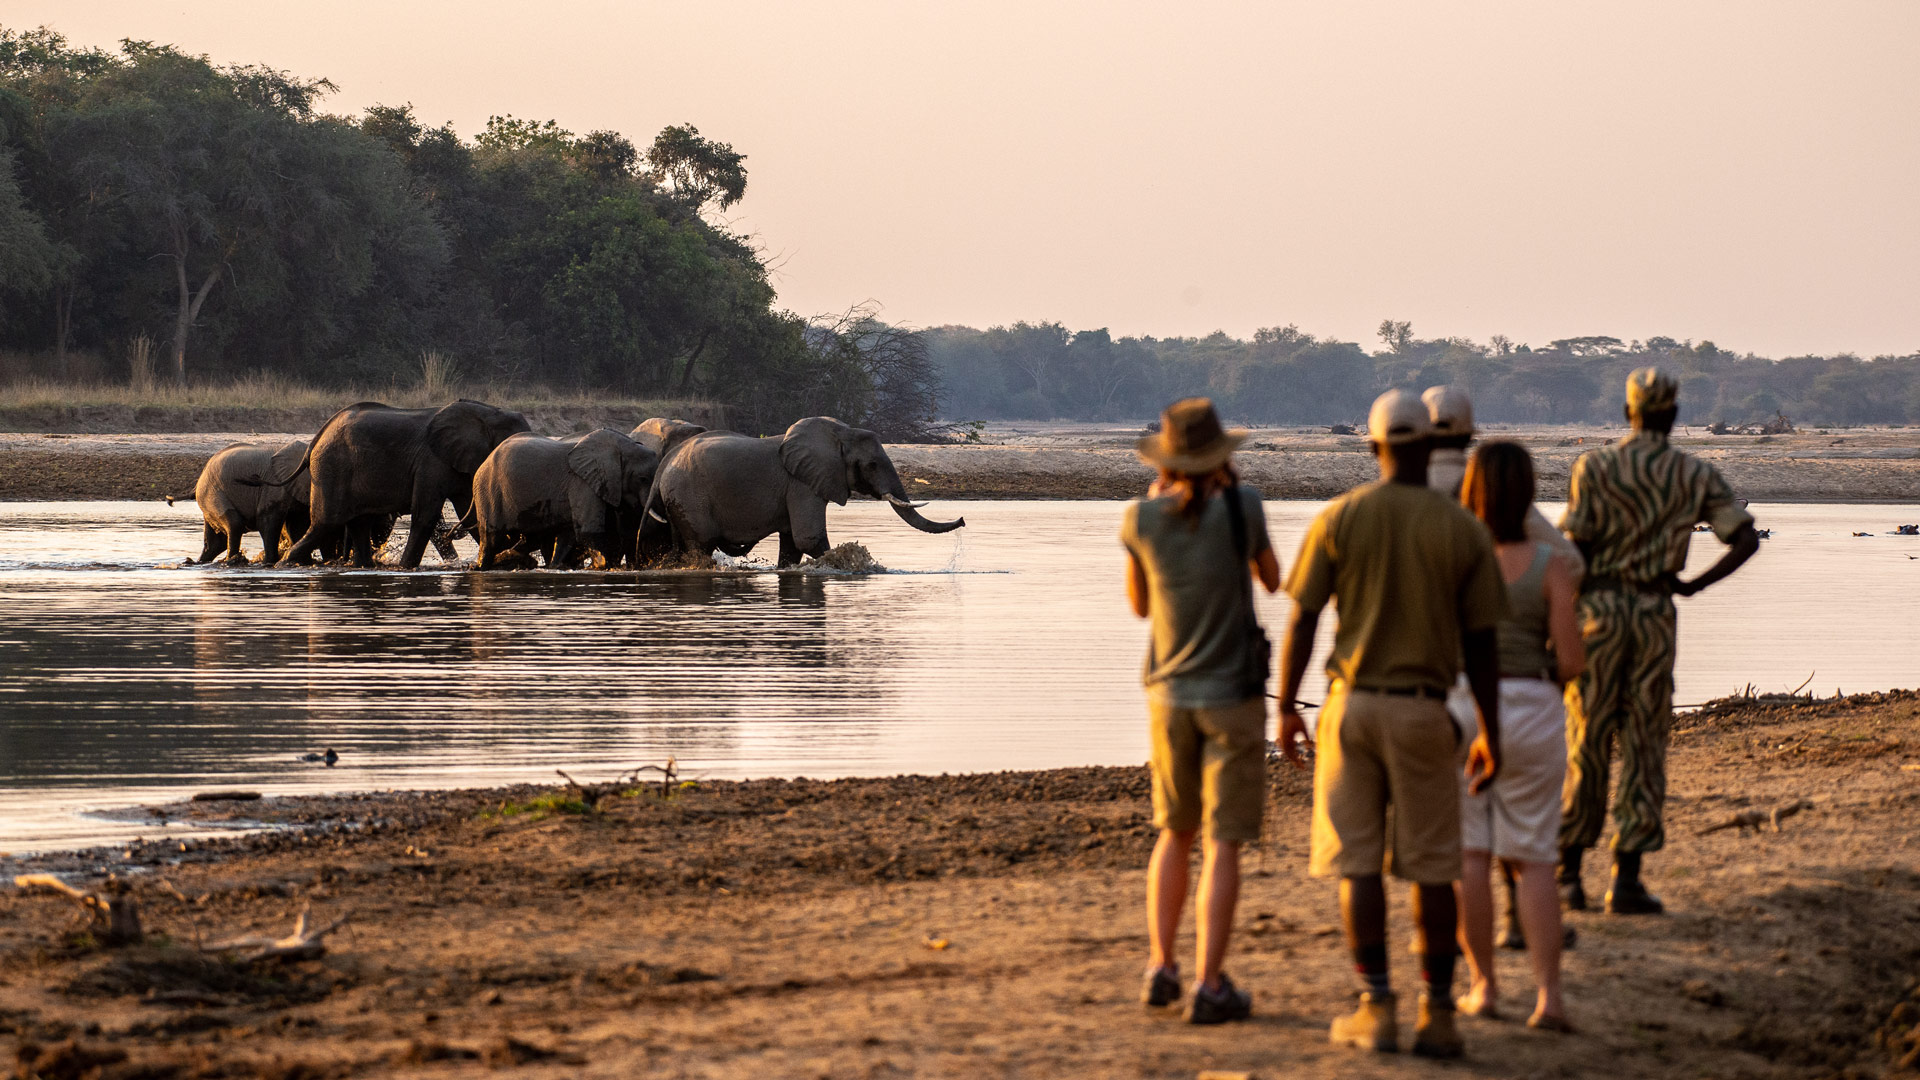 A heard of elephants crossing the Luangwa river in Zambia as a group of tourists and safari guides look on.